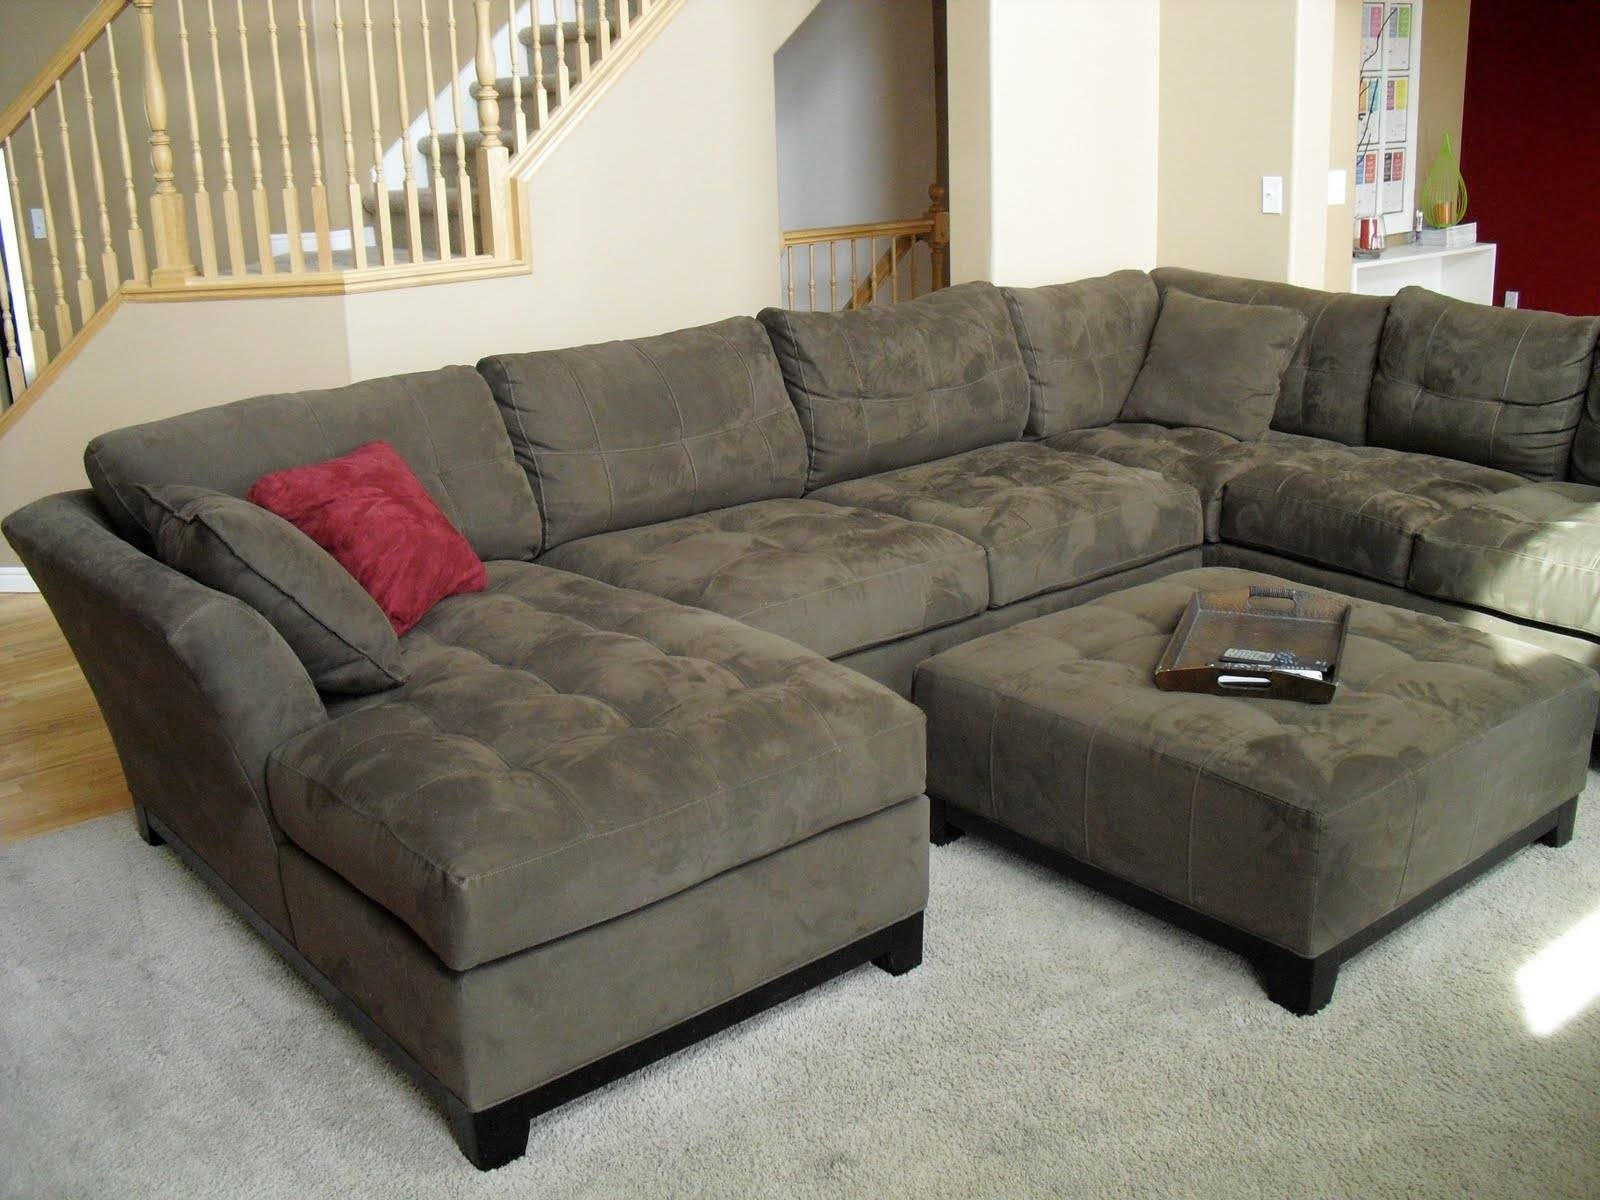 Furniture: Sectional Couch For Sale | L Shaped Couch | Extra Large regarding Green Sectional Sofa With Chaise (Image 9 of 30)